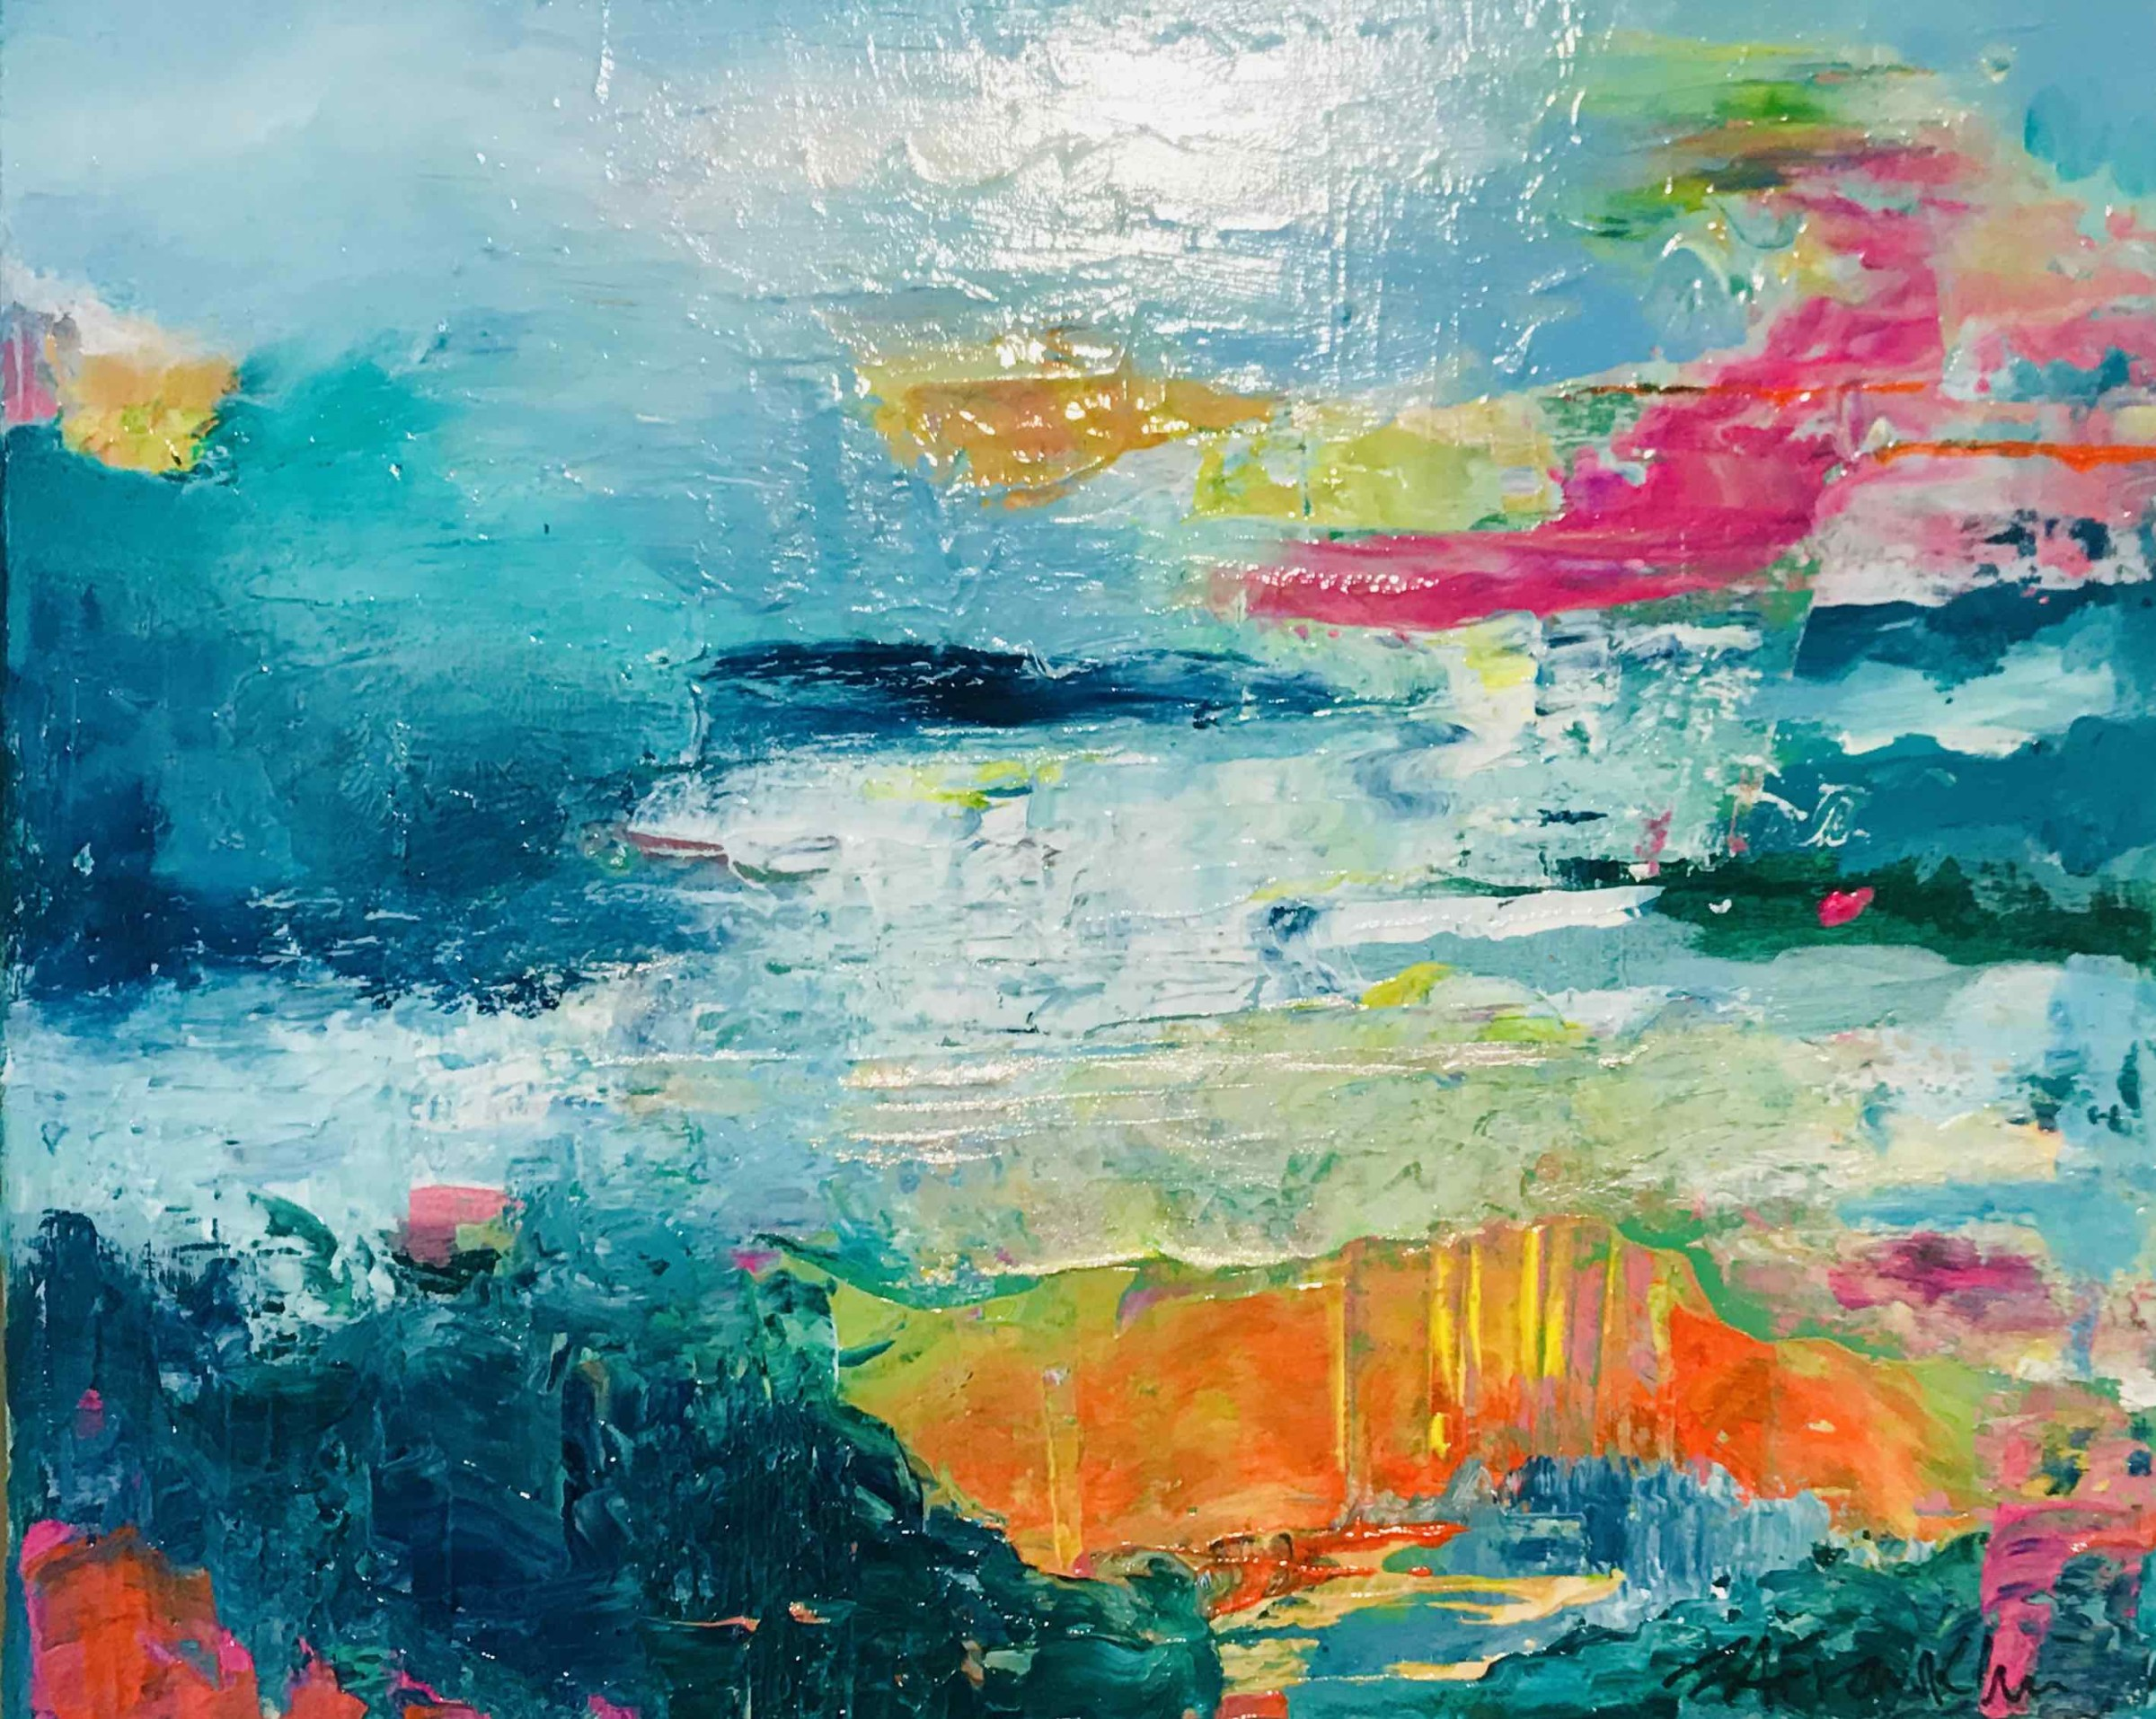 "<span class=""link fancybox-details-link""><a href=""/artists/38-linda-franklin/works/2974-linda-franklin-changing-weather/"">View Detail Page</a></span><div class=""artist""><strong>Linda Franklin</strong></div> <div class=""title""><em>Changing Weather</em></div> <div class=""medium"">Acrylic on Canvas</div> <div class=""dimensions"">29 x 34cm</div><div class=""price"">£450.00</div><div class=""copyright_line"">Copyright The Artist</div>"